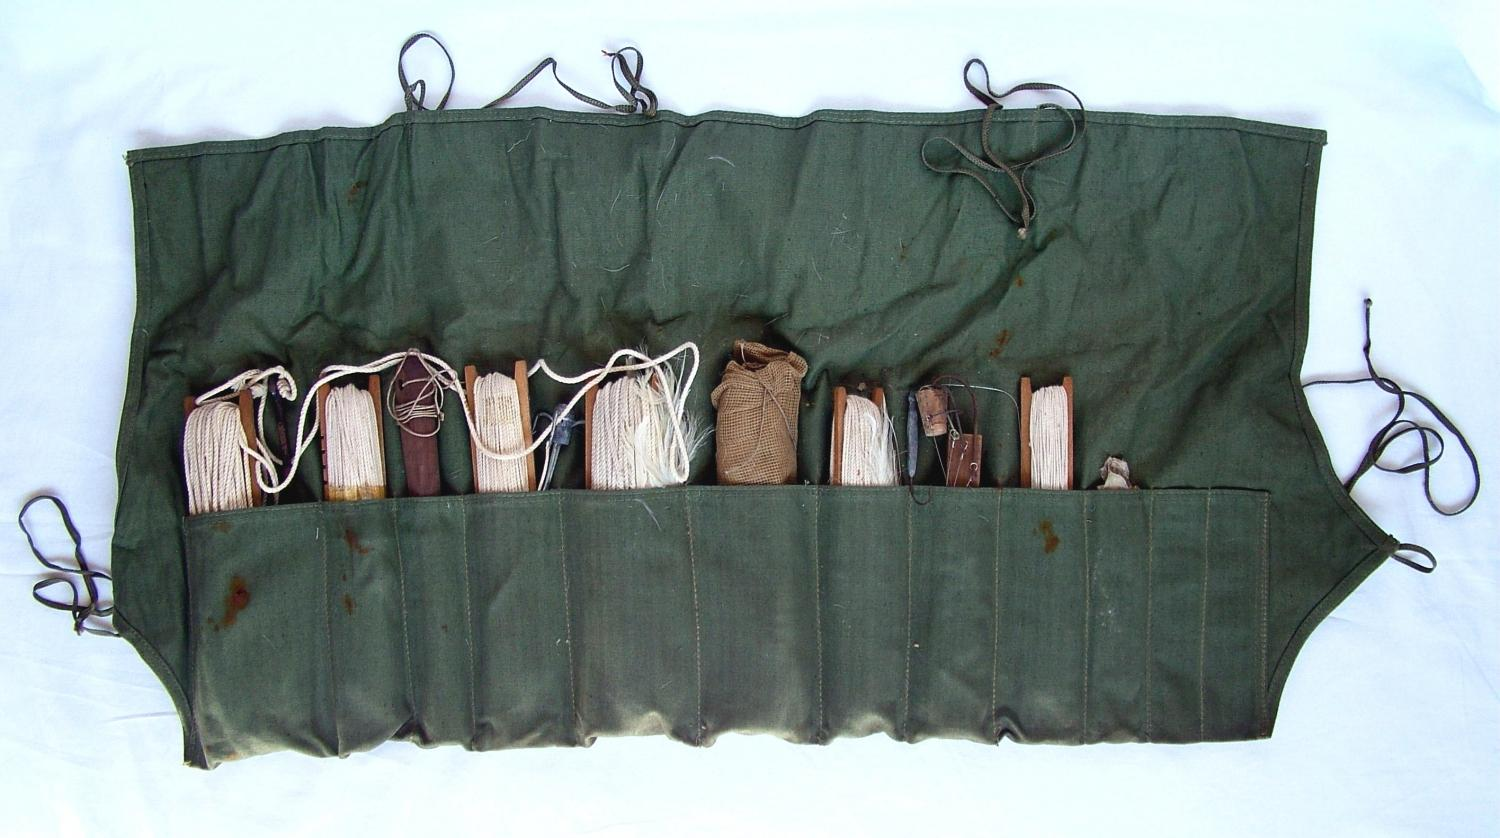 Usaaf emergency survival fishing kit in ww2 usaaf for Survival fishing kit